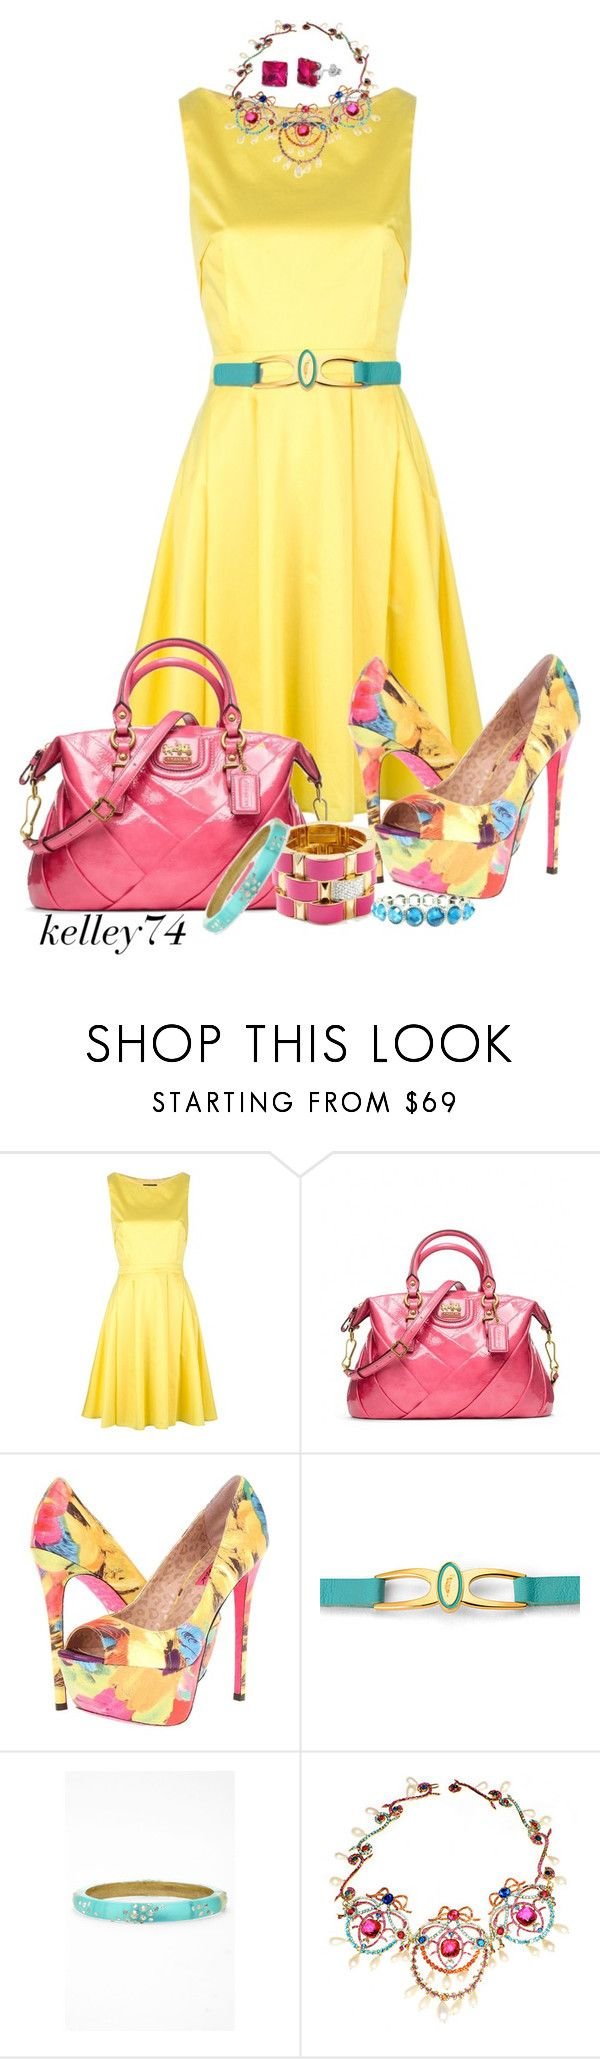 """Tara Jarmon Dress"" by kelley74 ❤ liked on Polyvore featuring Tara Jarmon, Coach, Betsey Johnson, Juicy Couture, Aspinal of London, Alexis Bittar, Chanel and Fantasy Jewelry Box"